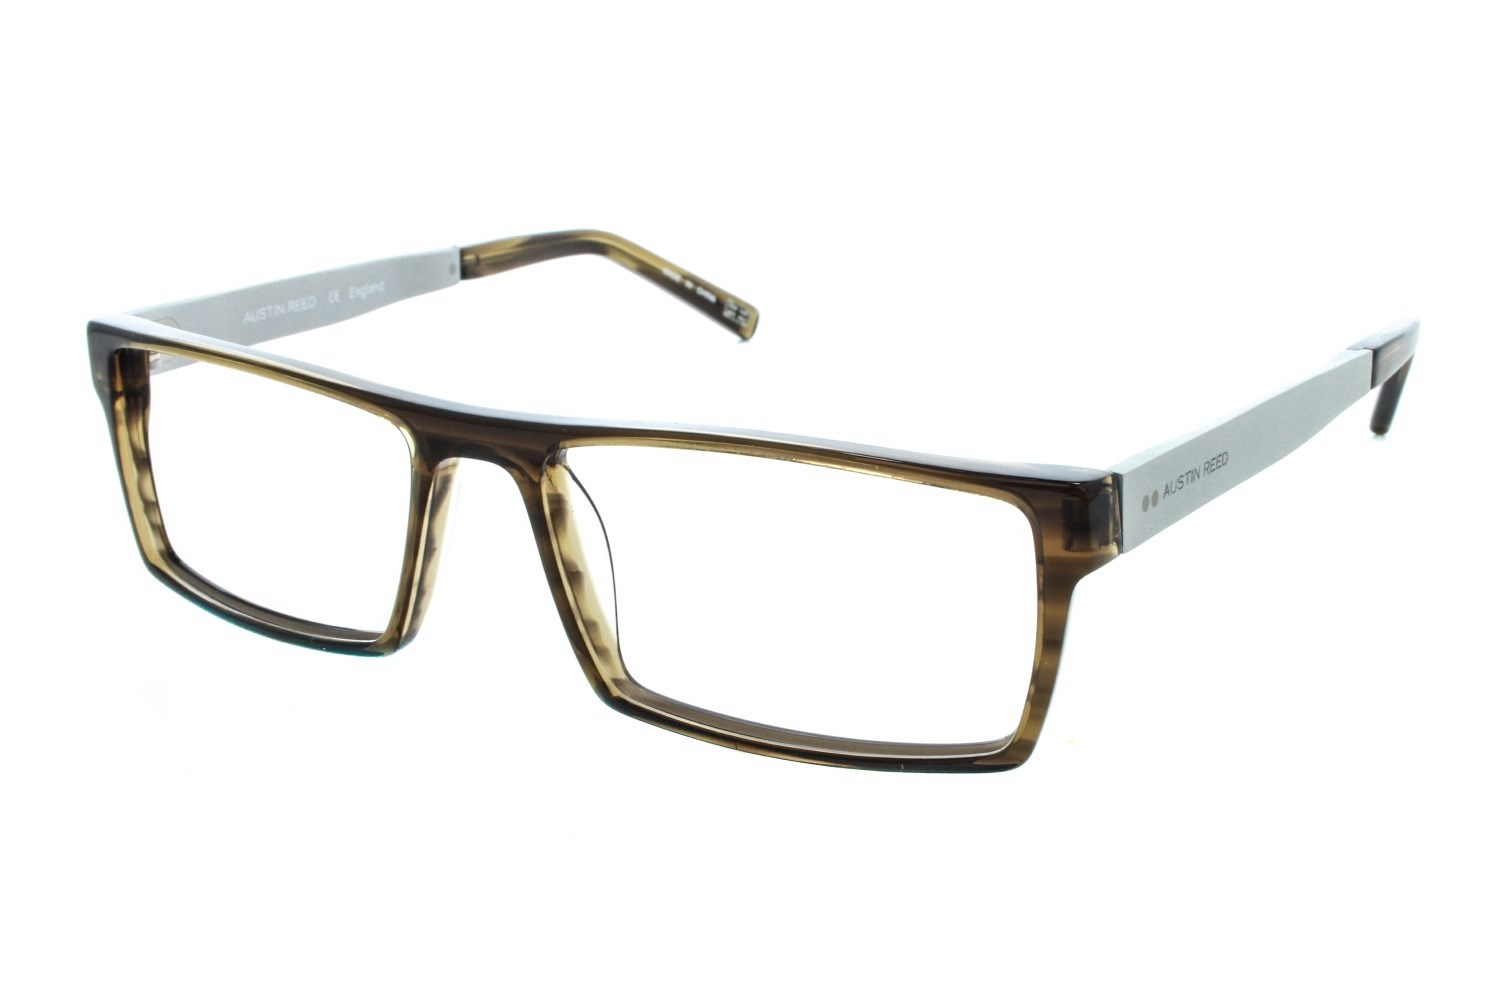 Austin Reed Ar R06 Prescription Eyeglasses Frames Aclensinspired